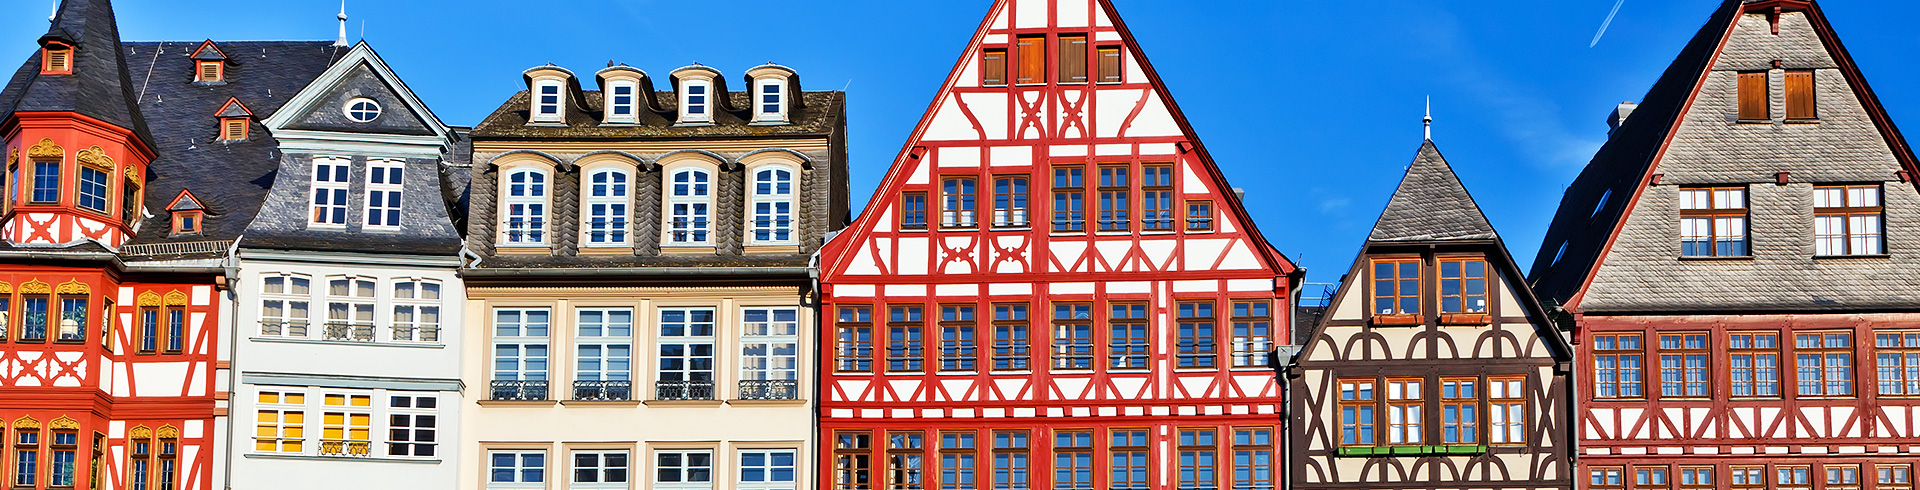 Discounted flight tickets to Frankfurt - IFlyFirstClass